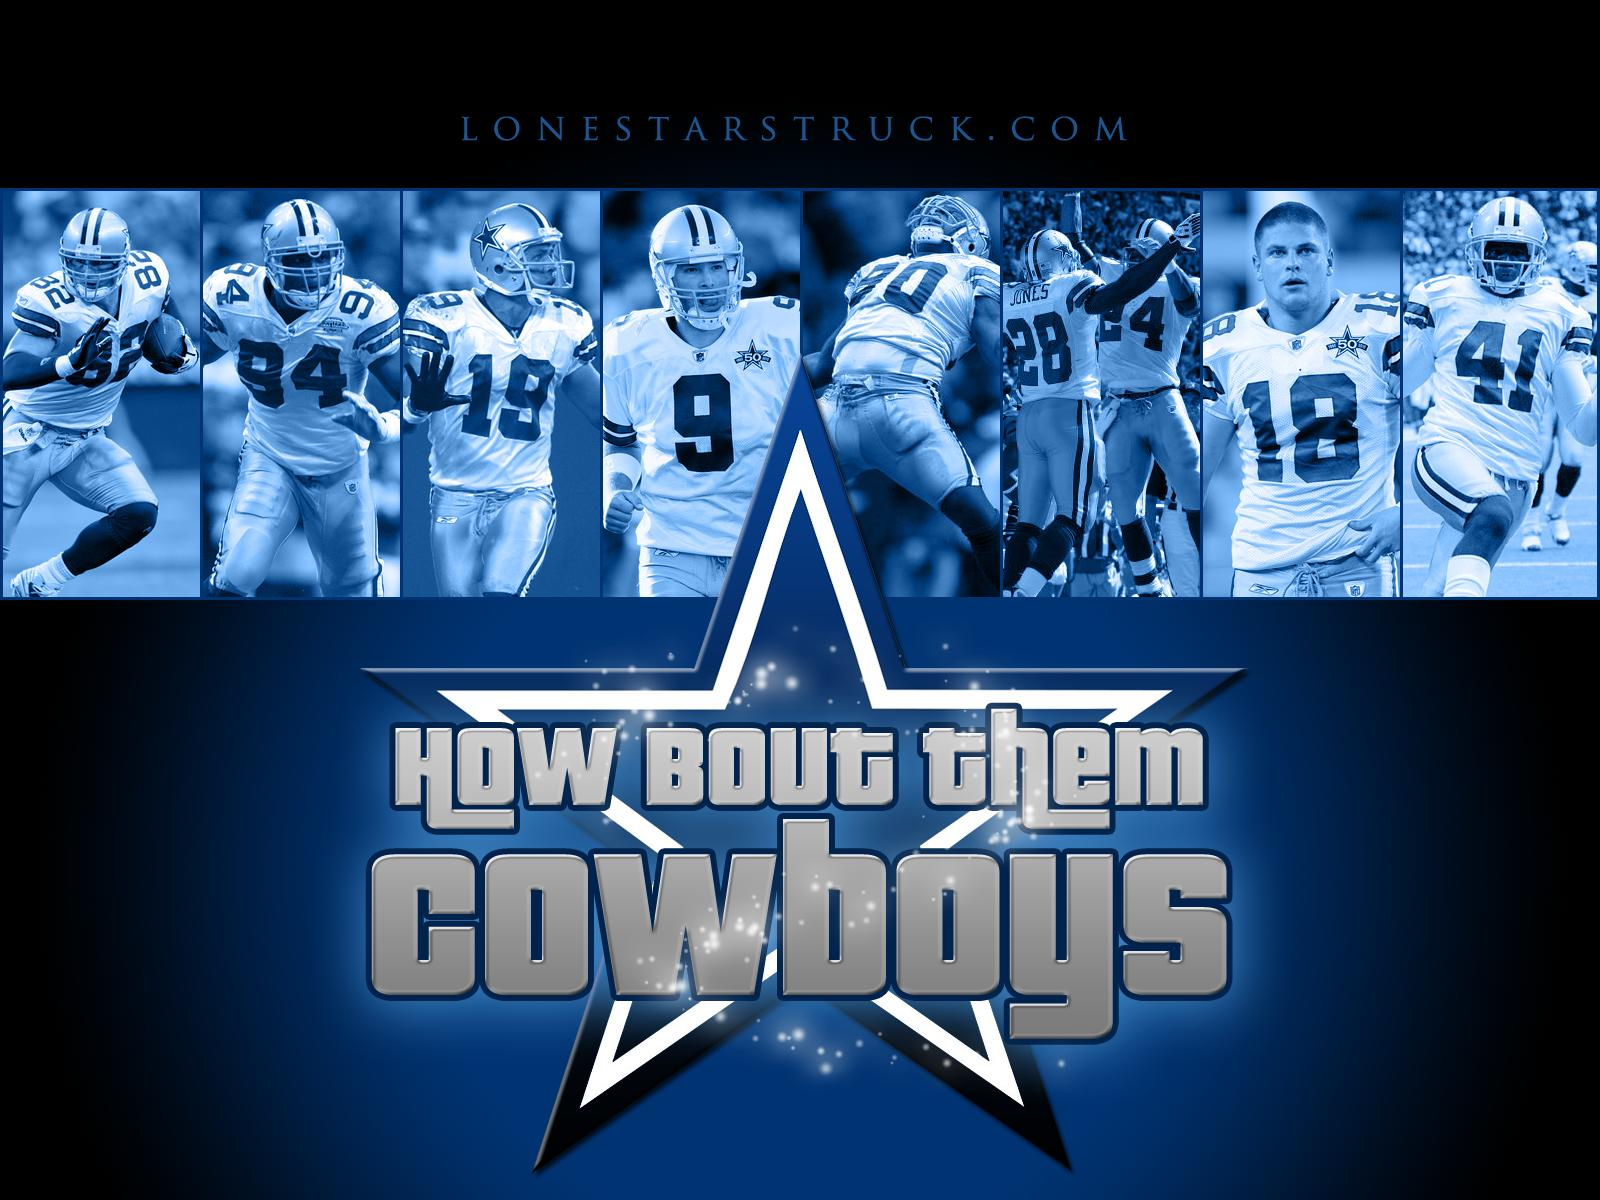 Collection of Dallas Cowboys Wallpapers on HDWallpapers 1600x1200 1600x1200